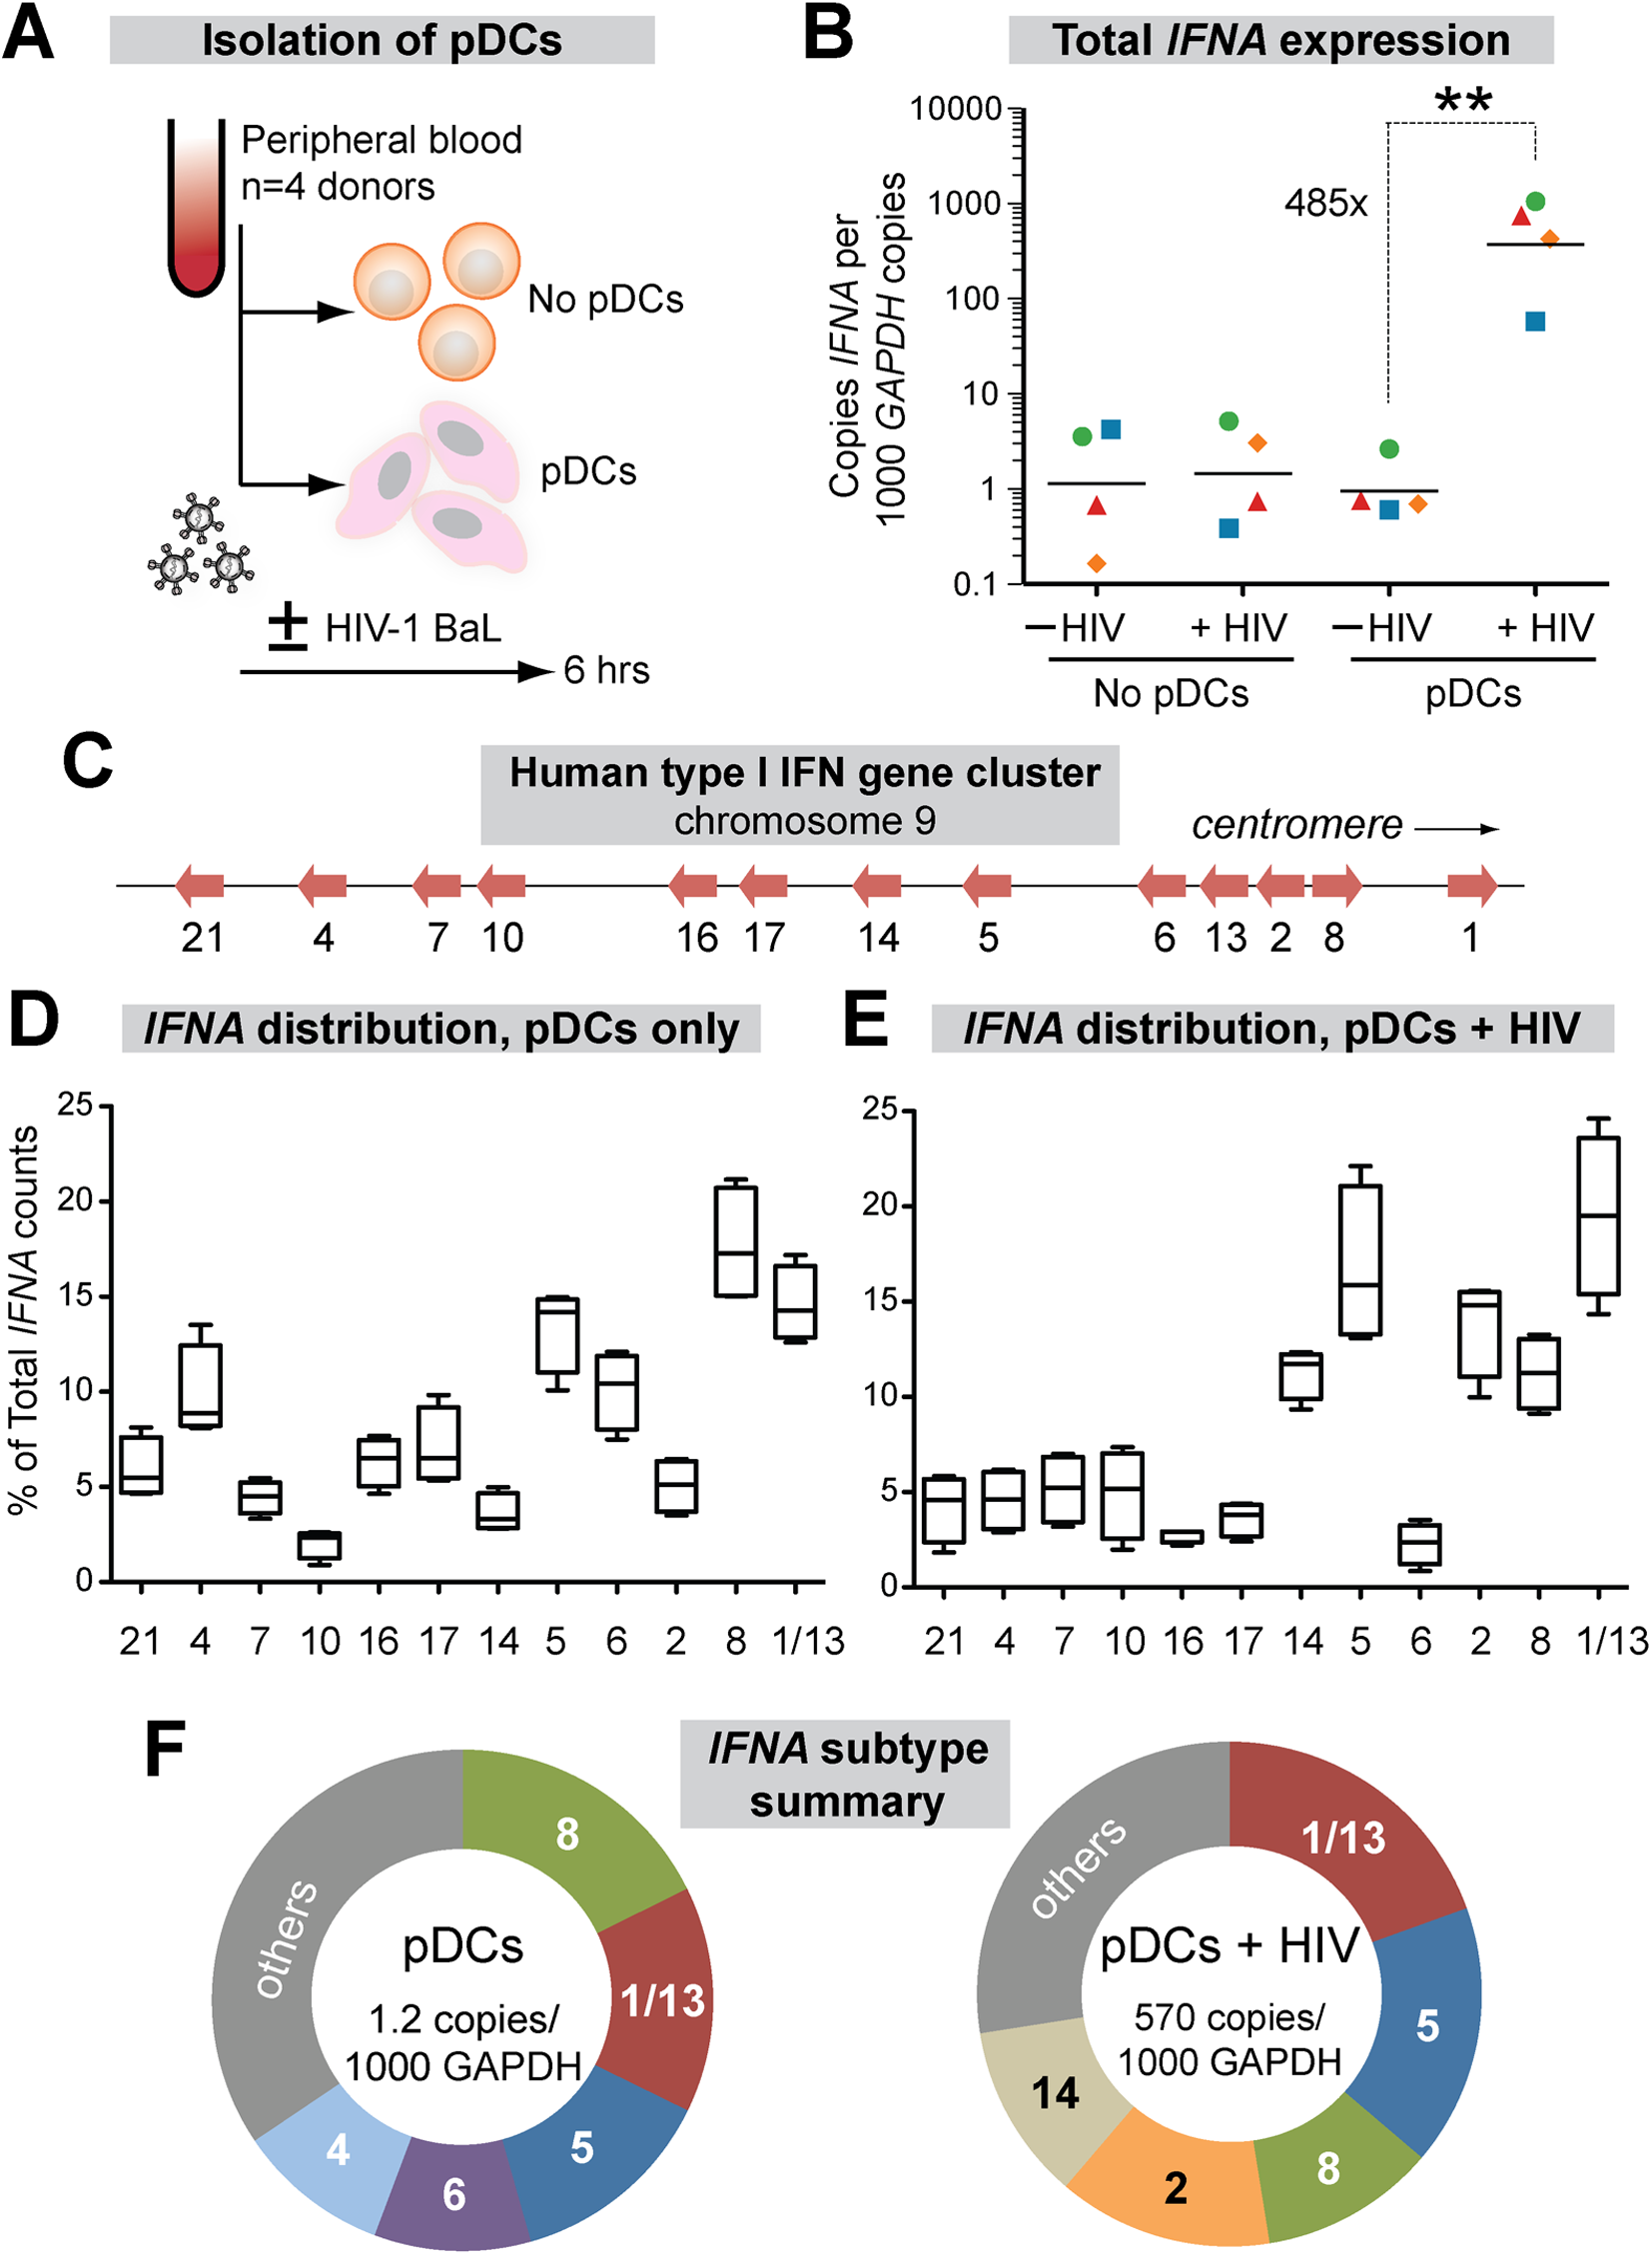 Expression of IFNα subtypes in pDCs following HIV-1 exposure.